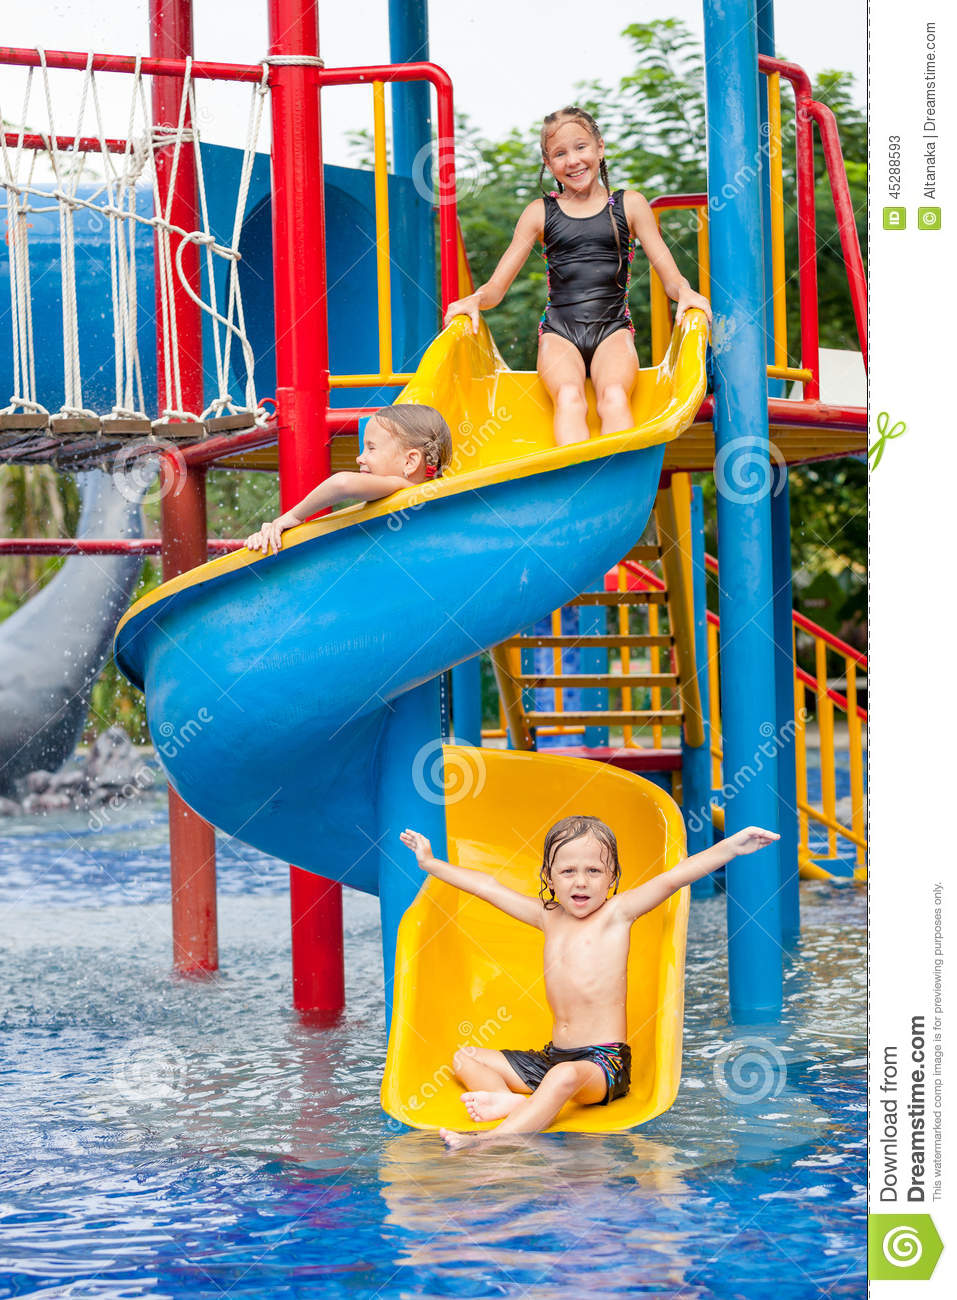 Toys r us coupons for swimming pools